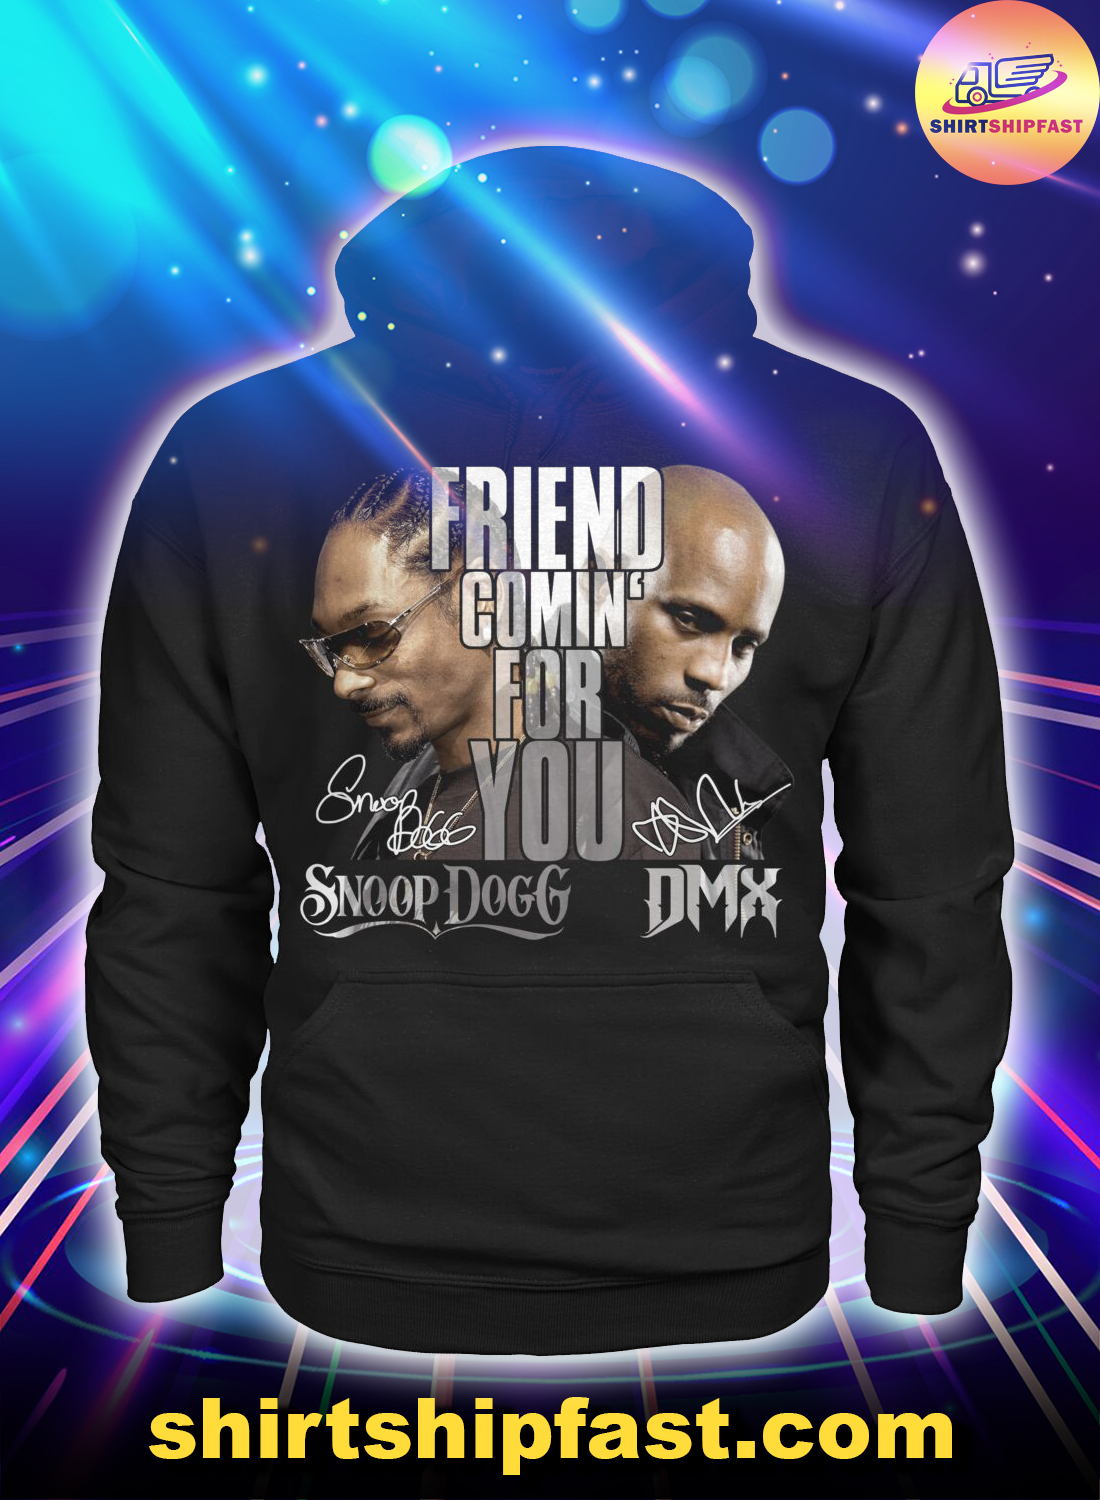 Snoop Dogg DMX Friend comin' for you hoodie